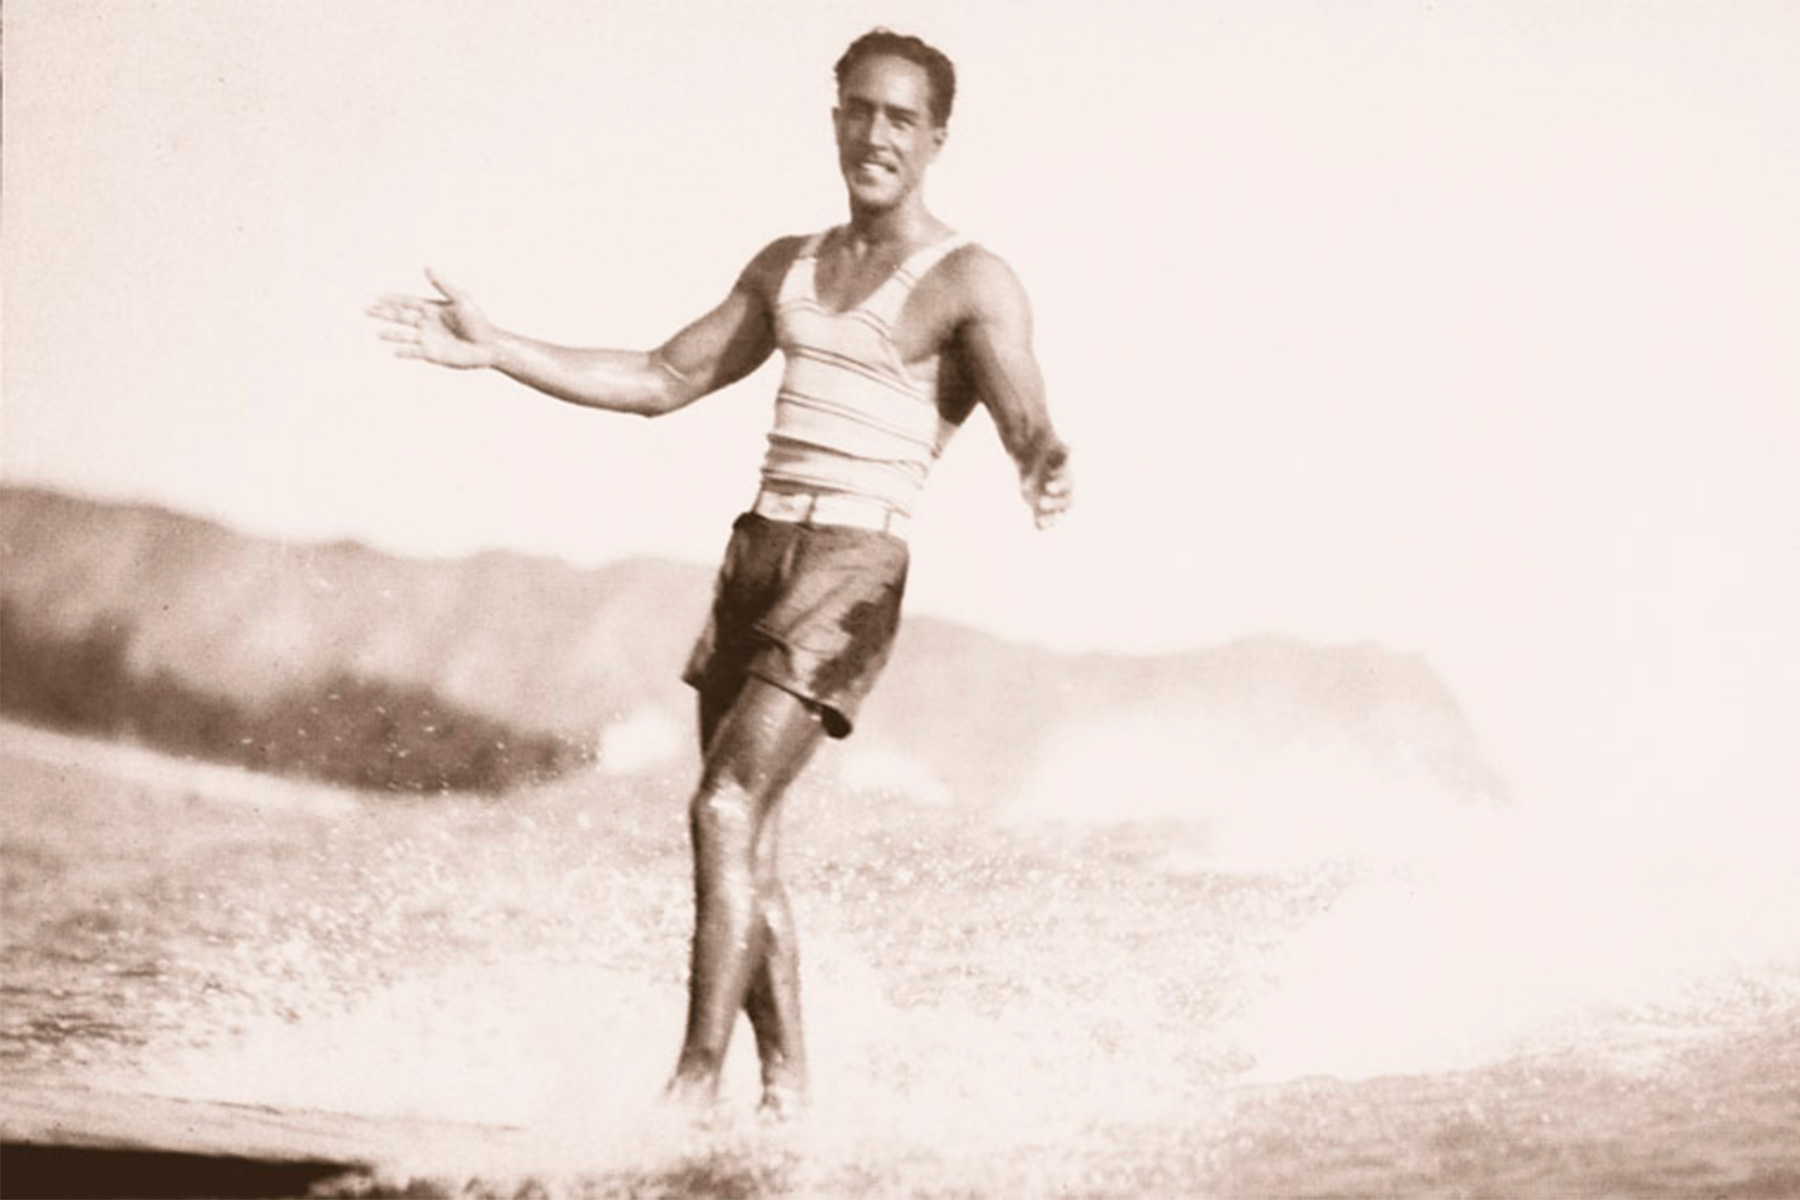 david kahanamoku surfing in front of diamond head, waikiki, in the 1930s